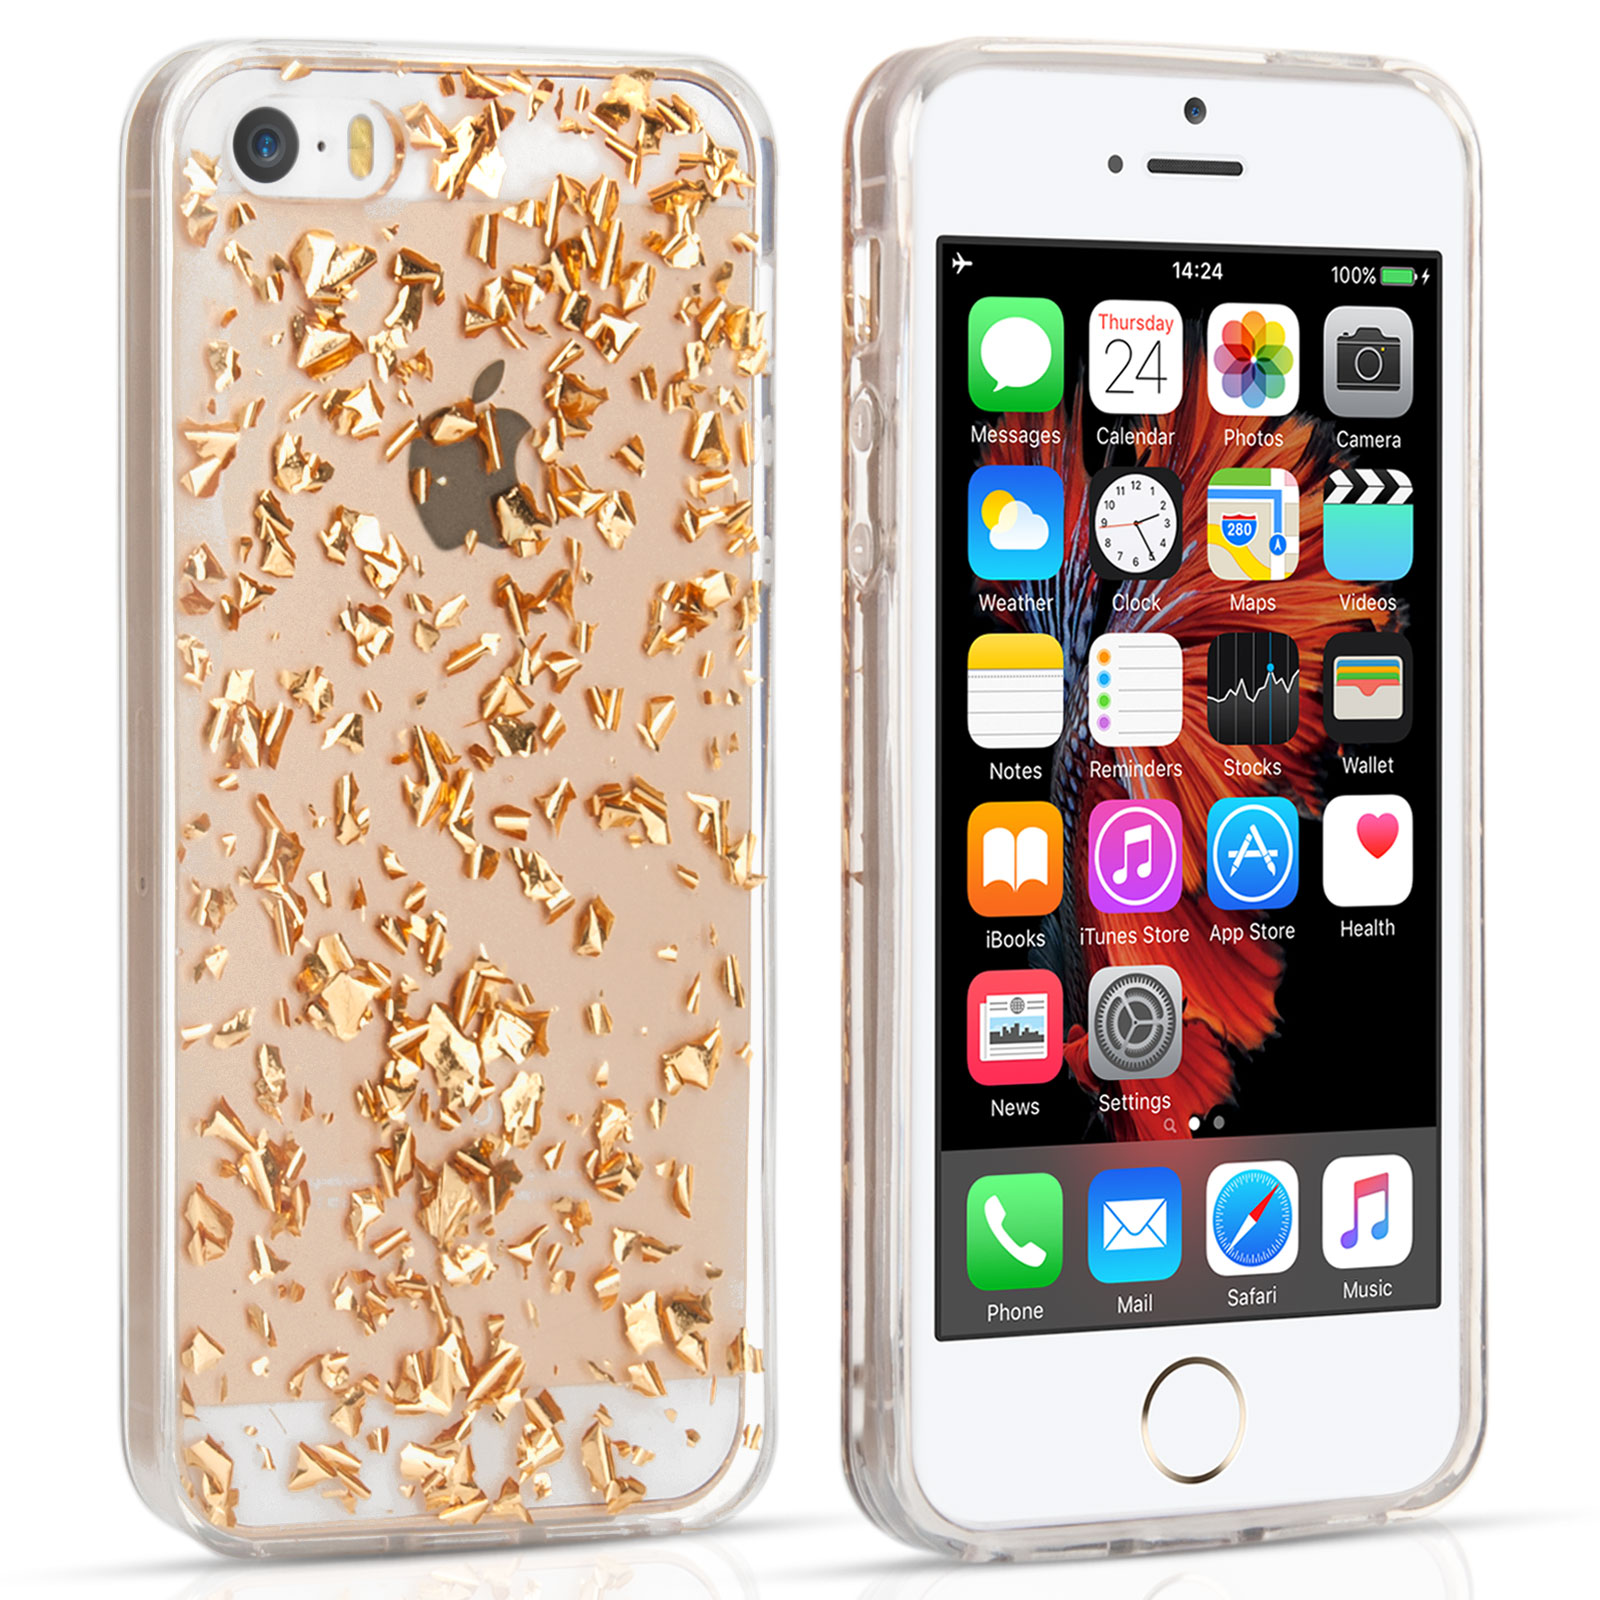 Iphone 5s Cases Gold YouSave iPhone 5 / 5S ...